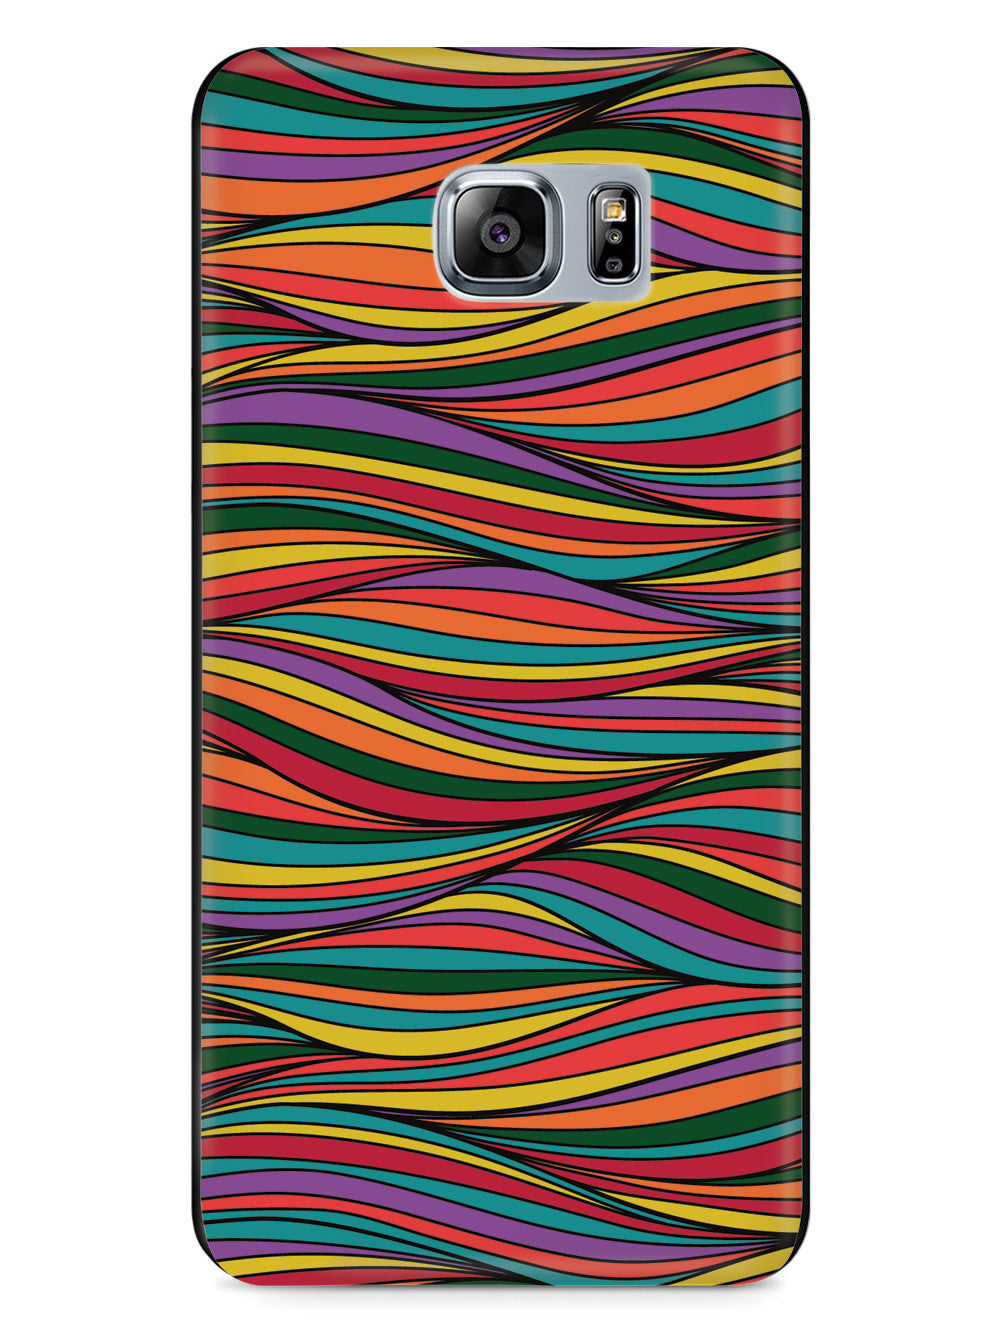 Colorful Waves Texture - Black Case